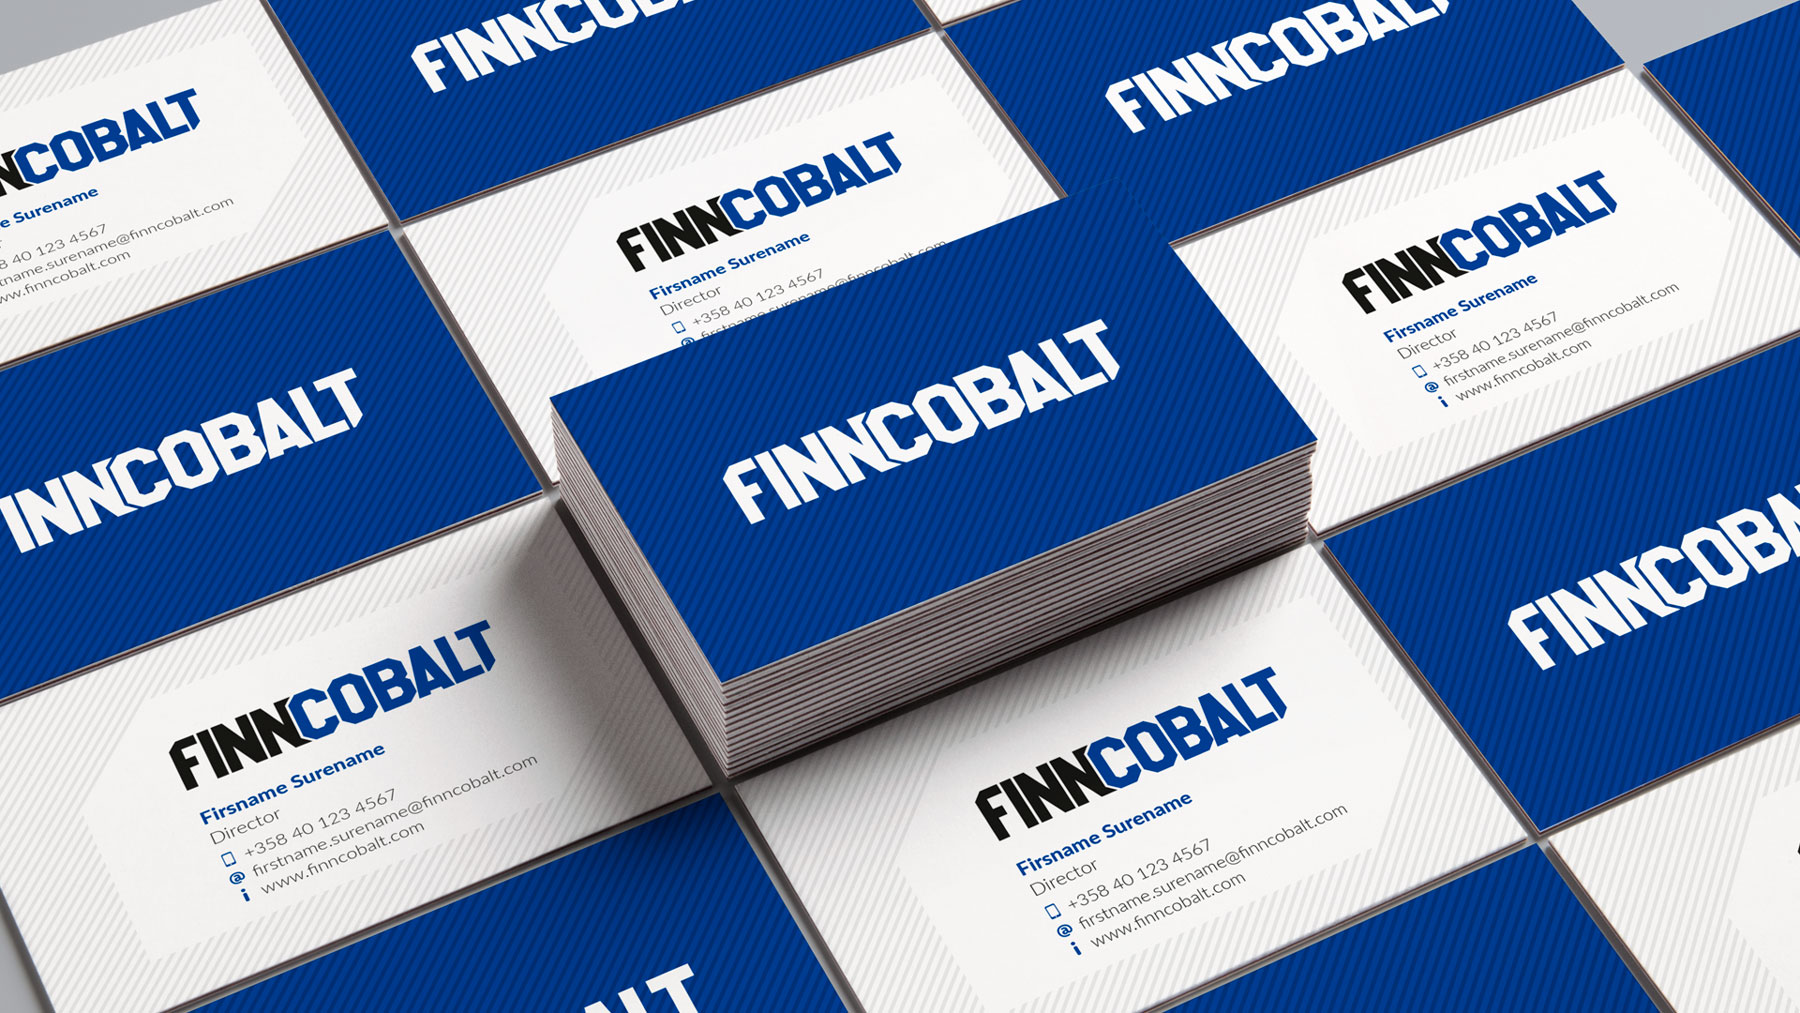 antibox finncobalt businsscards